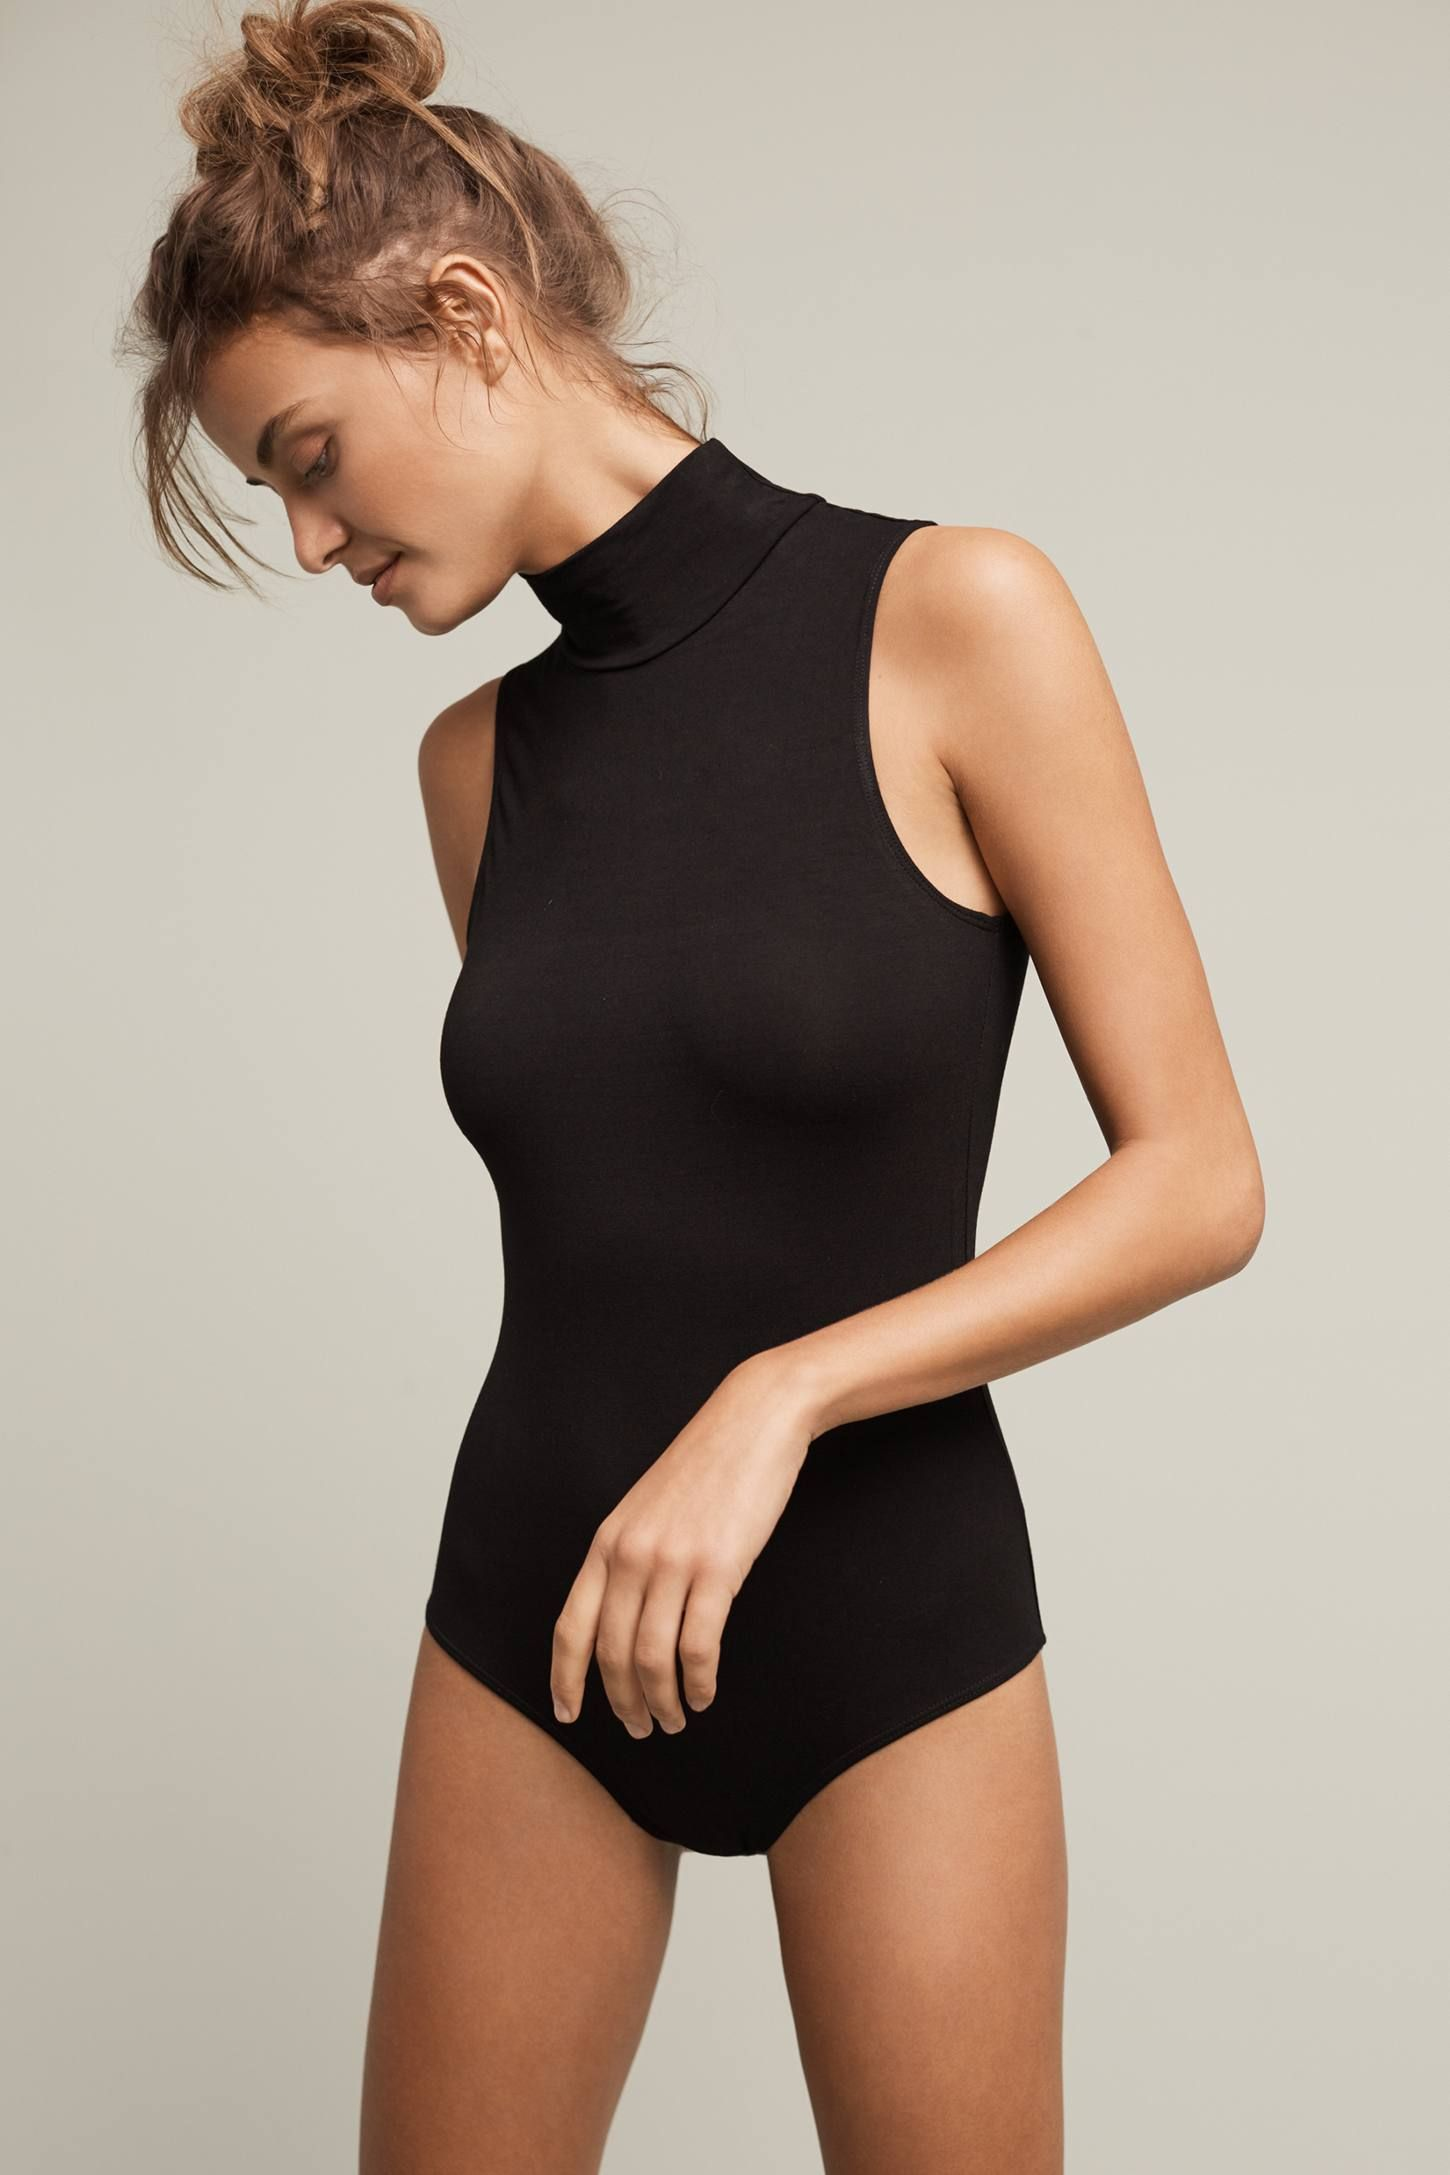 Slide View  1  Sleeveless Turtleneck Bodysuit  f7f2431e0